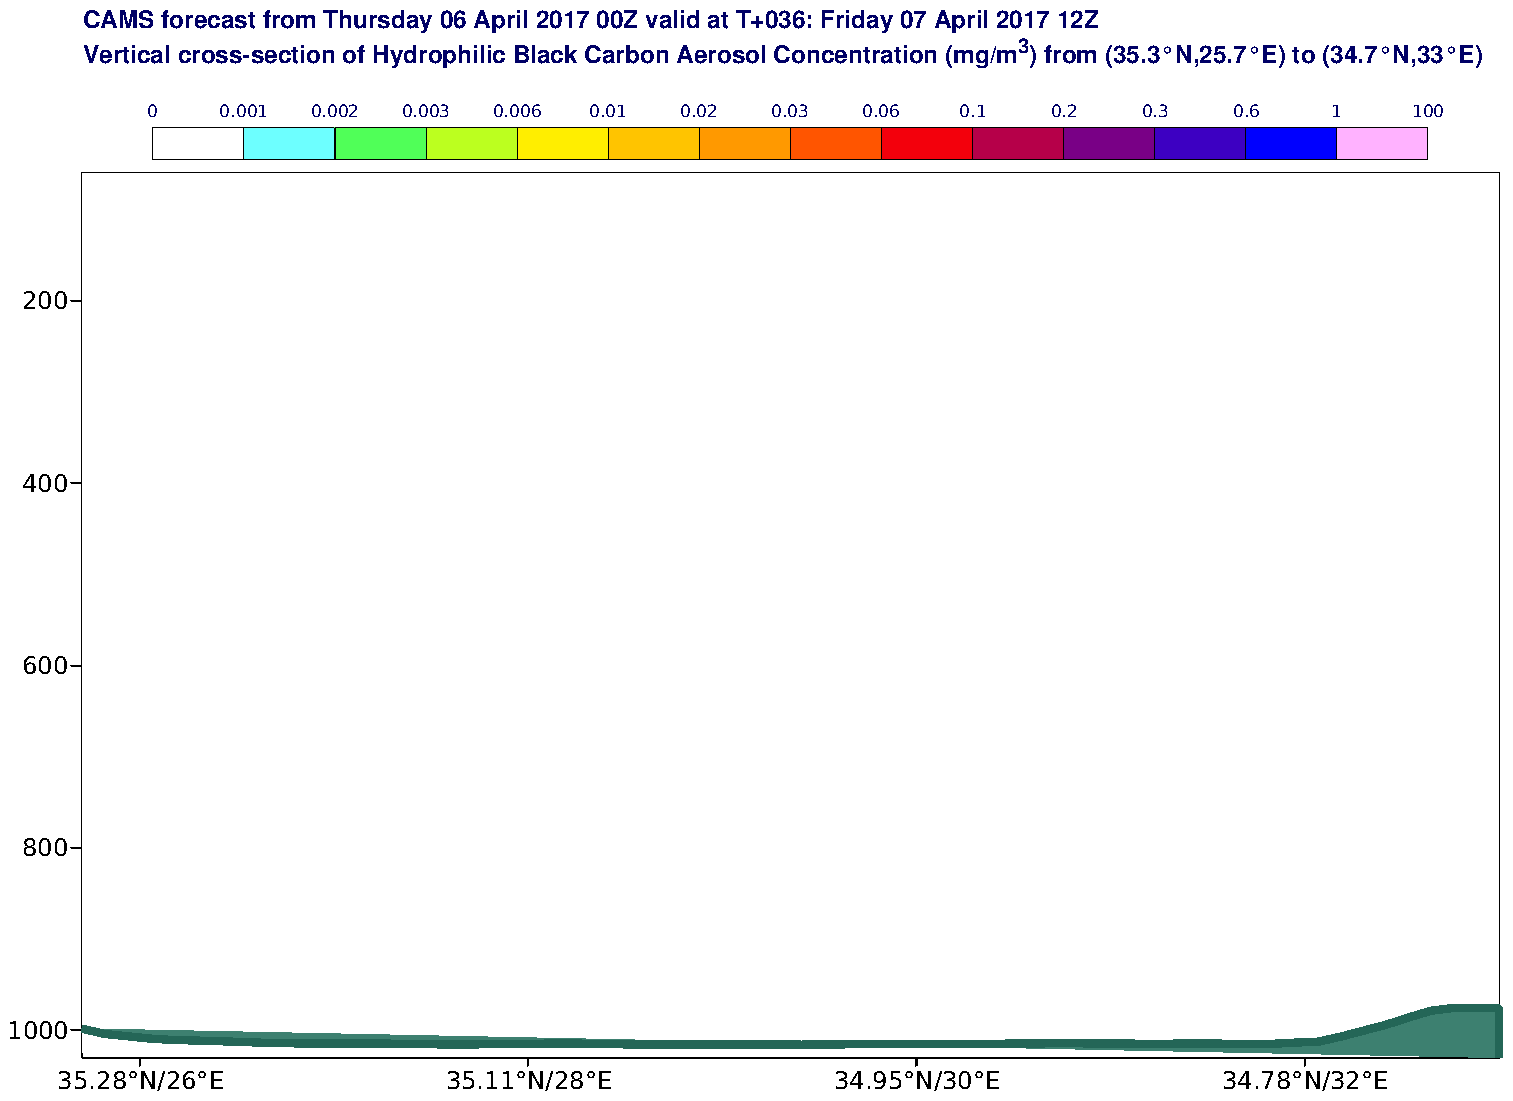 Vertical cross-section of Hydrophilic Black Carbon Aerosol Concentration (mg/m3) valid at T36 - 2017-04-07 12:00